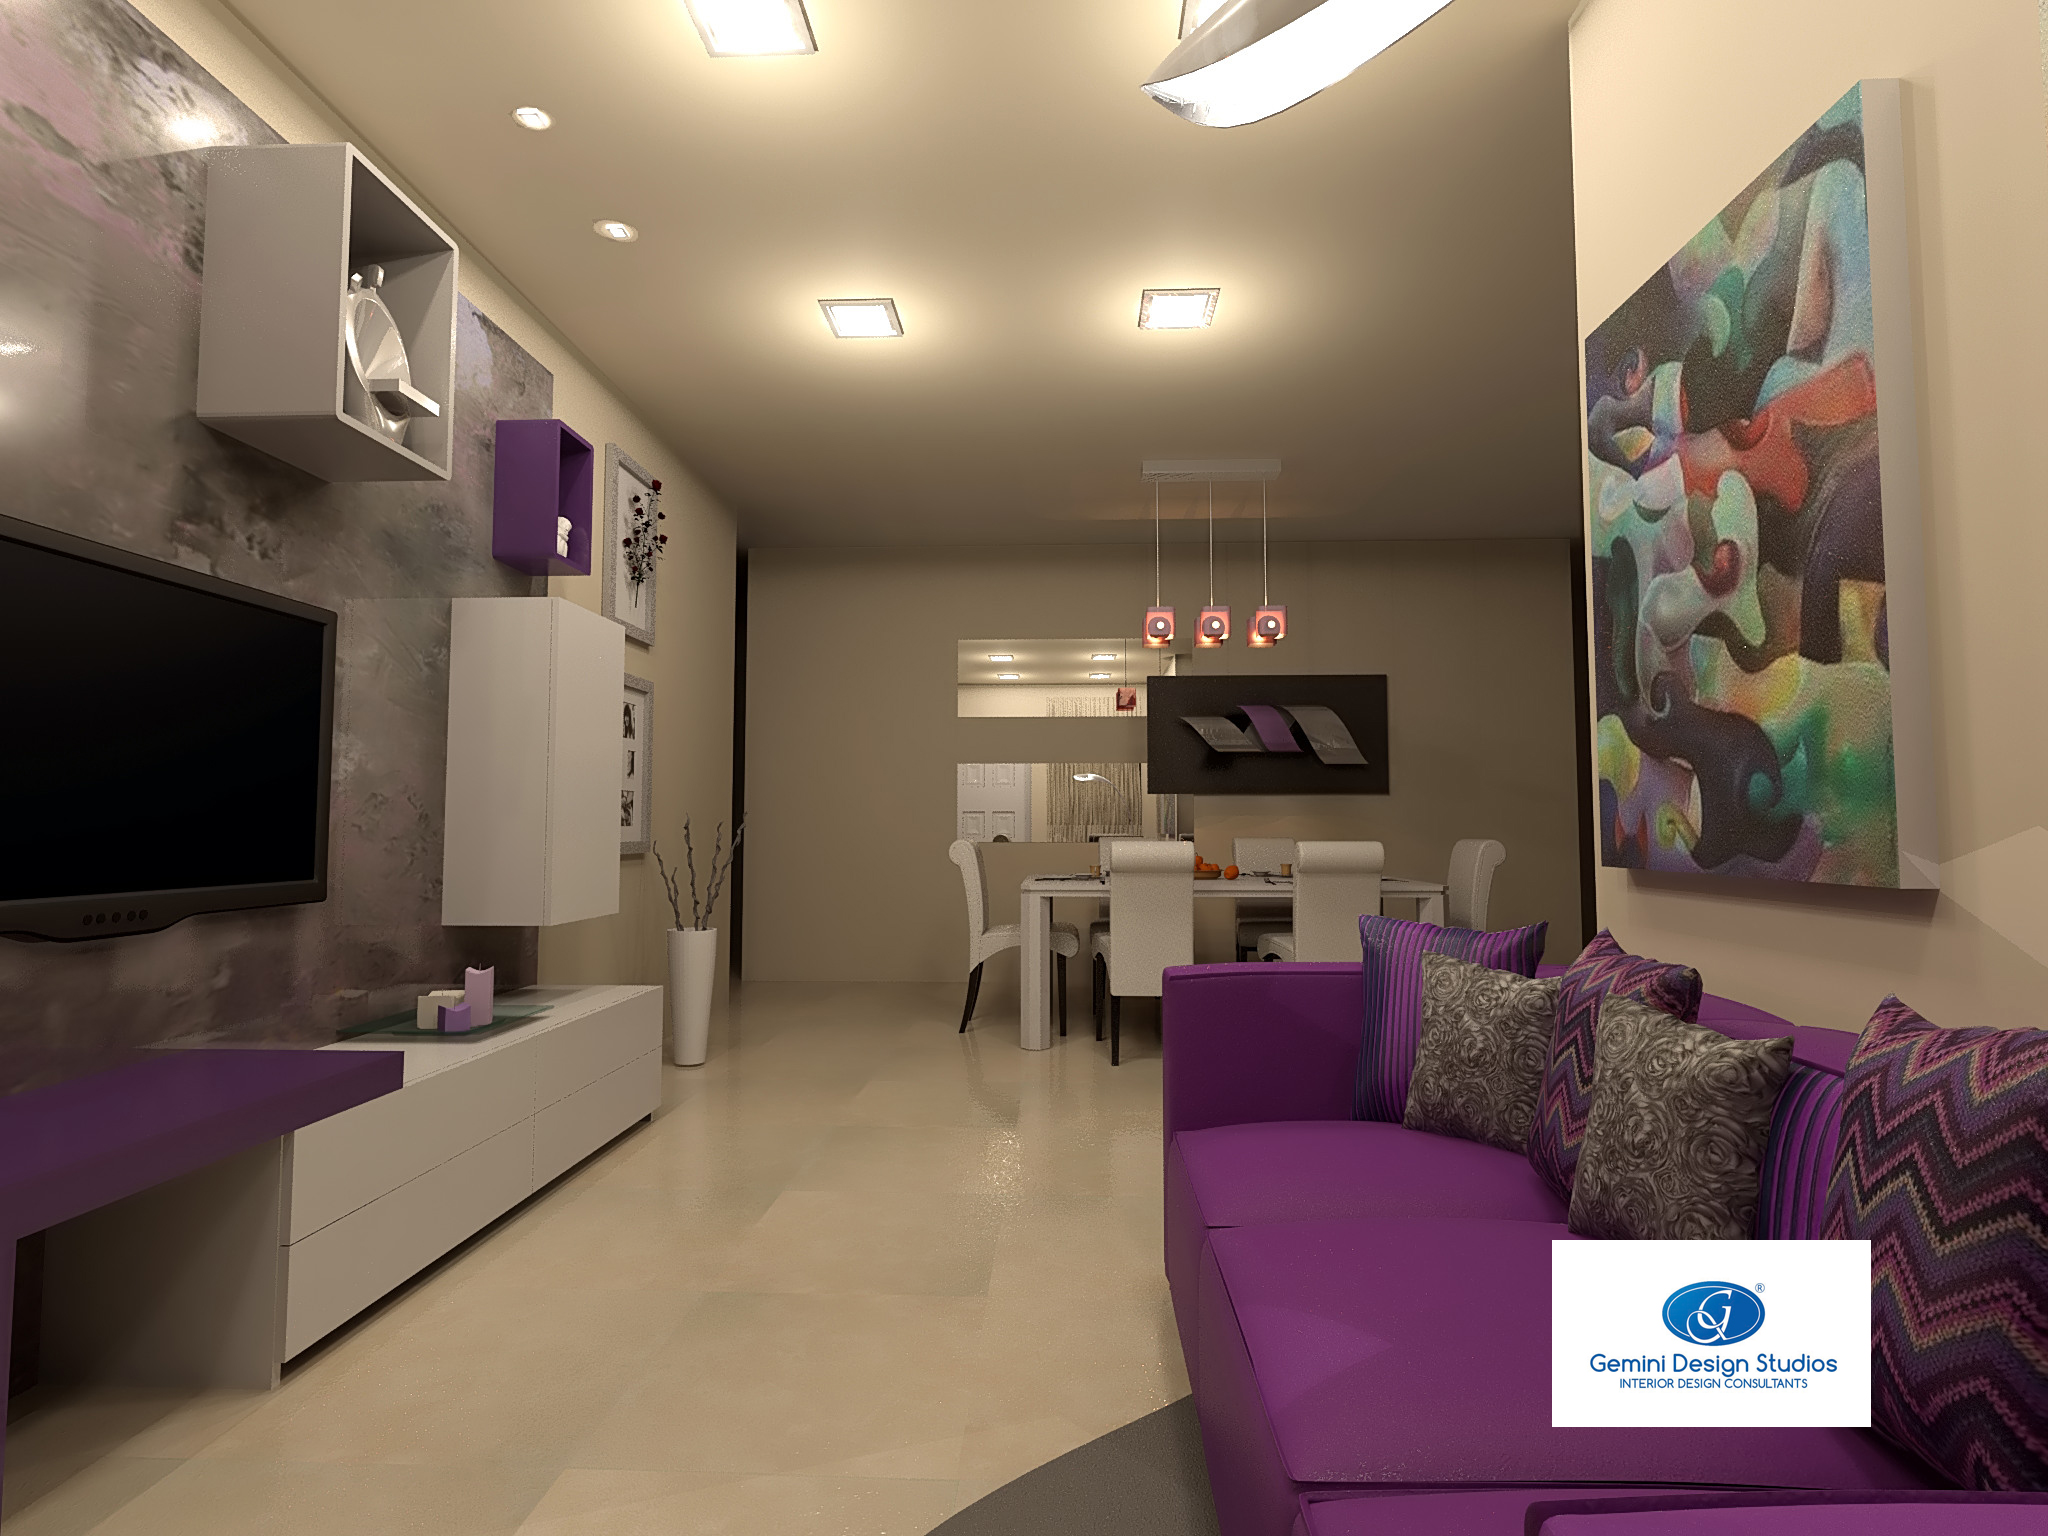 designing a living room with purple tones interior design malta gemini design studios ltd. Black Bedroom Furniture Sets. Home Design Ideas